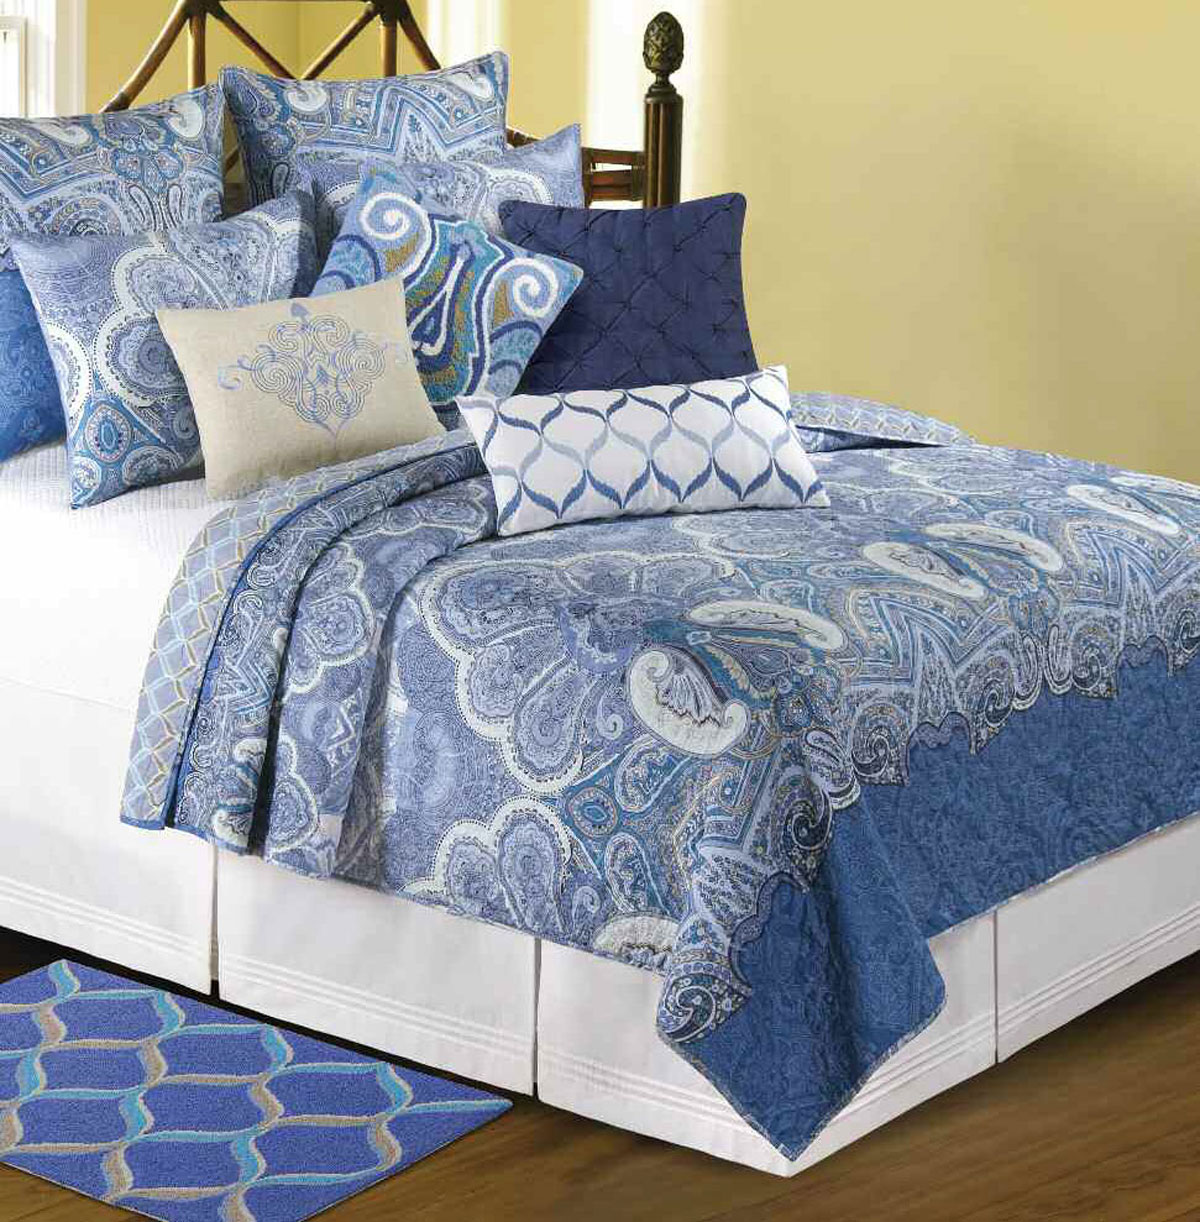 Daphne by C&F Quilts